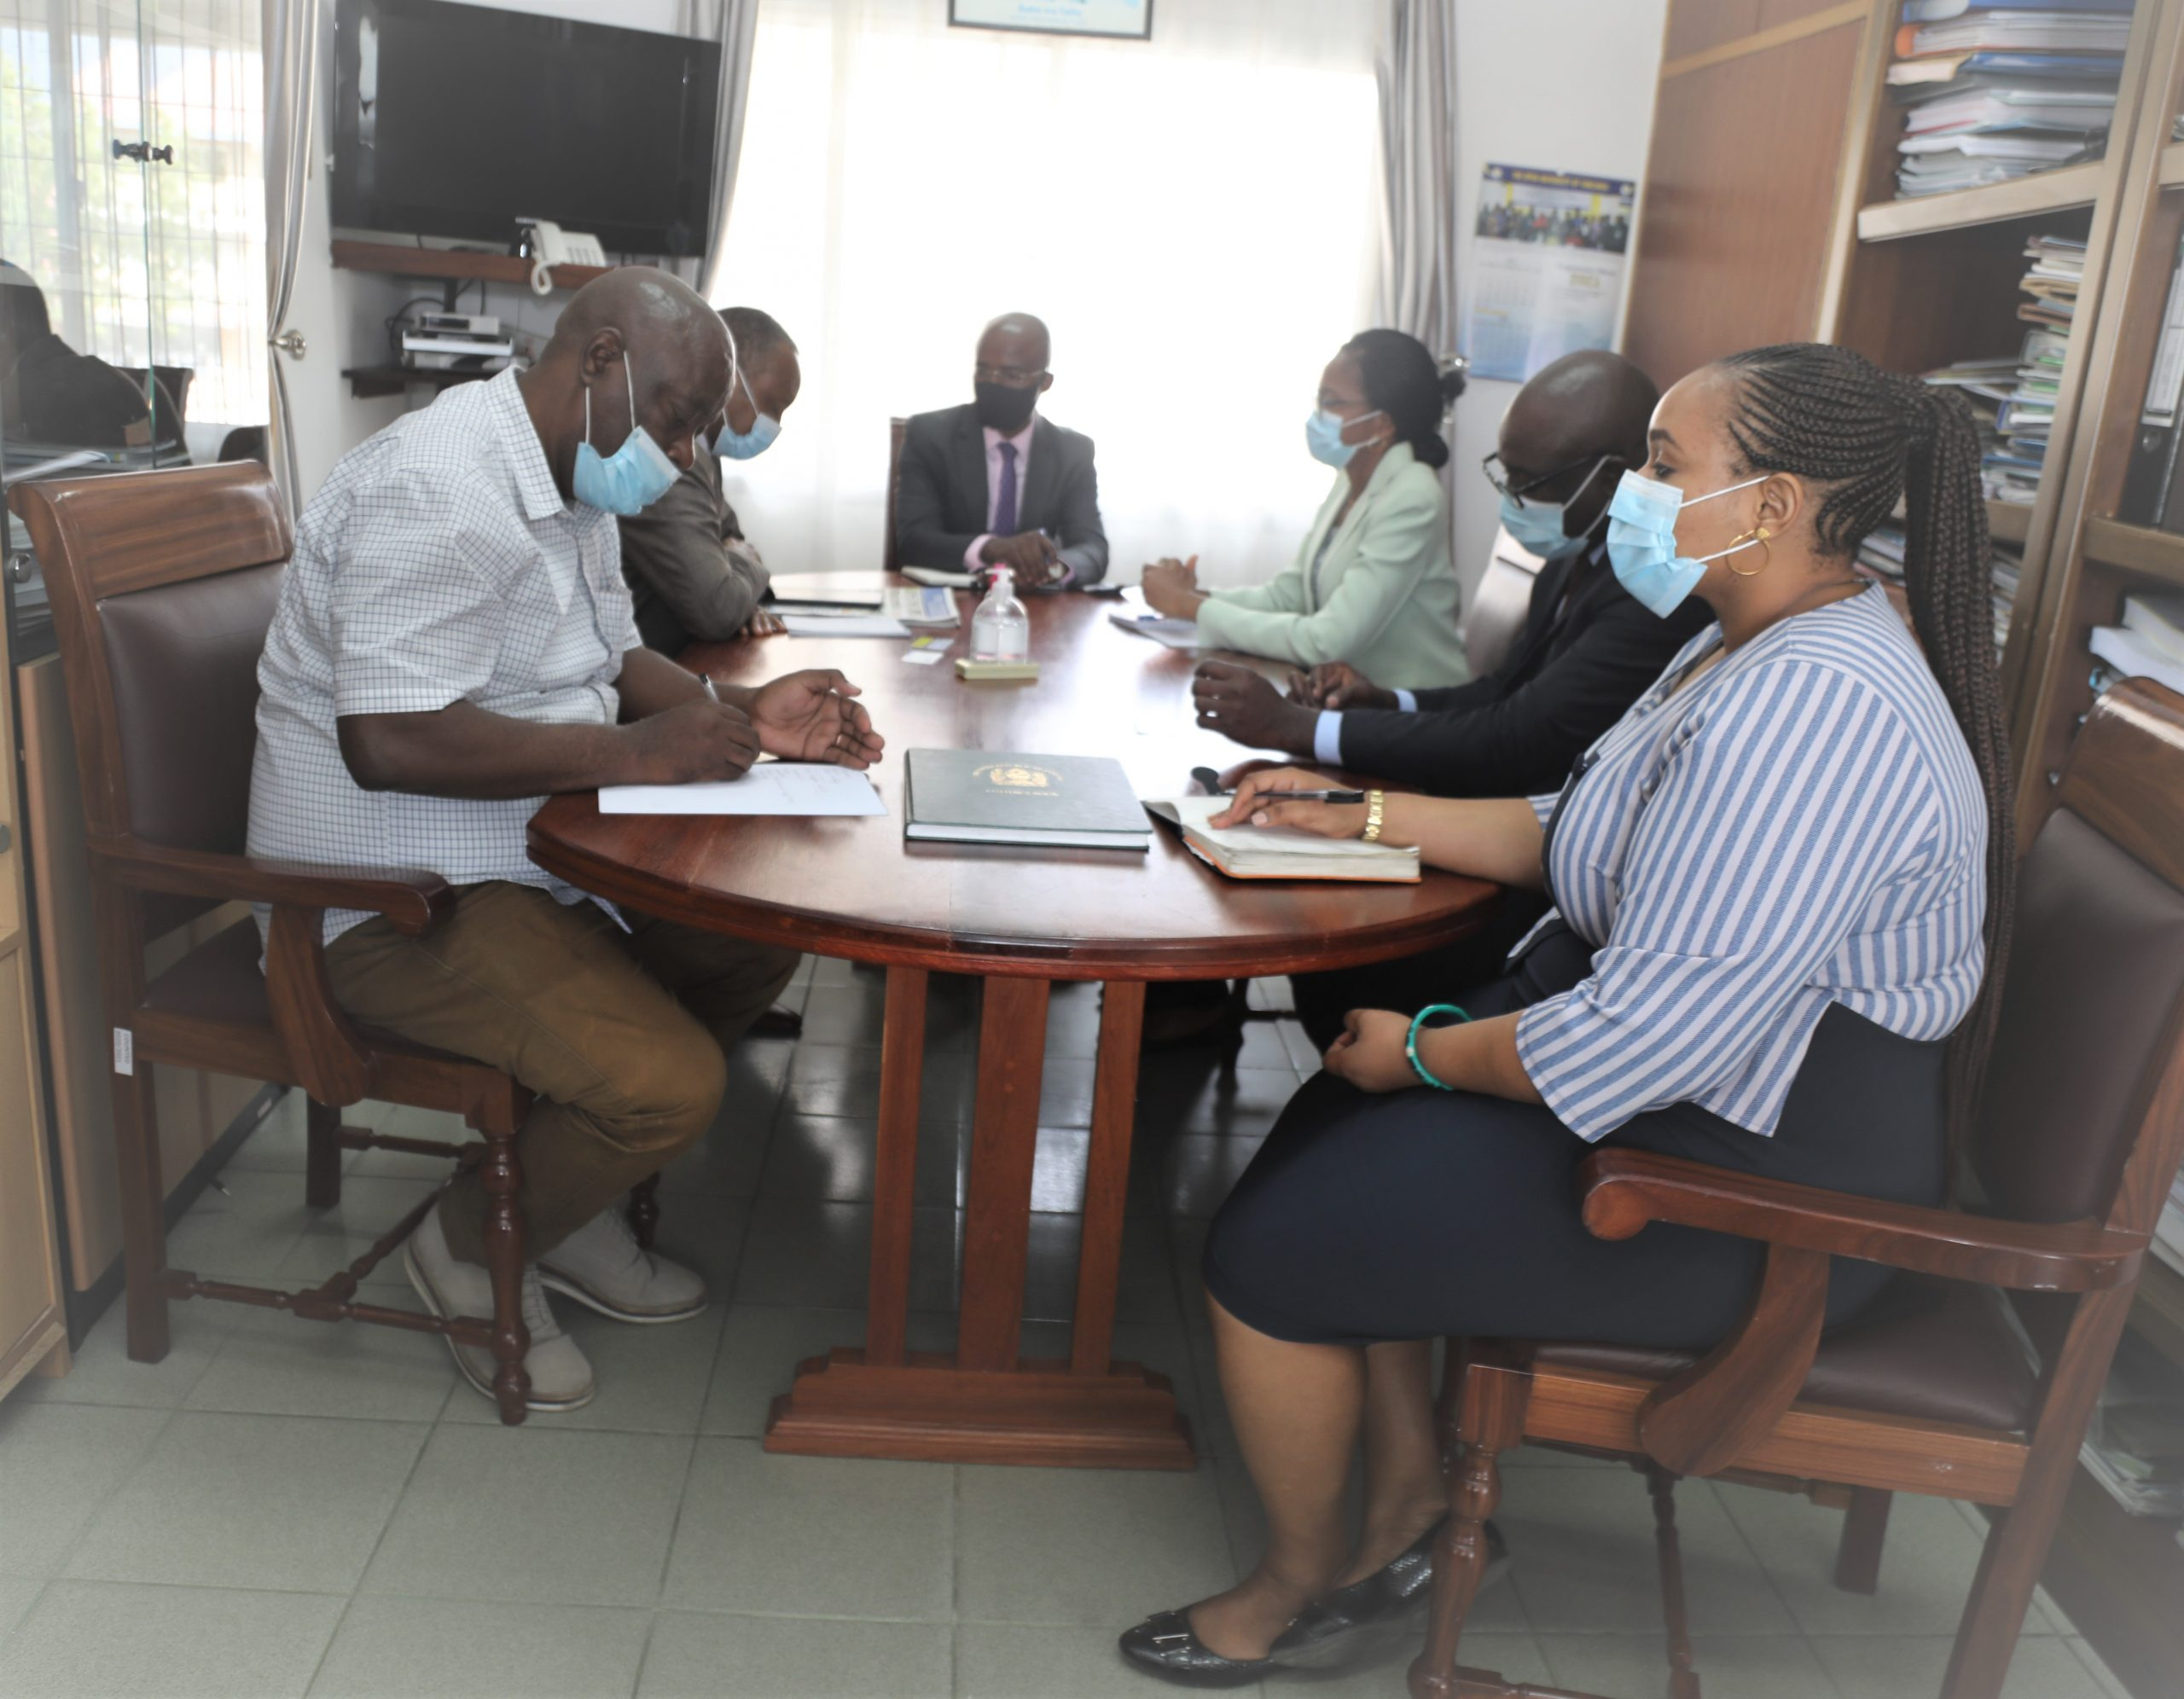 The Vice Chancellor of the Open University of Tanzania (OUT), Prof. Elifas Bisanda, embraces members of the NMB Bank PLC